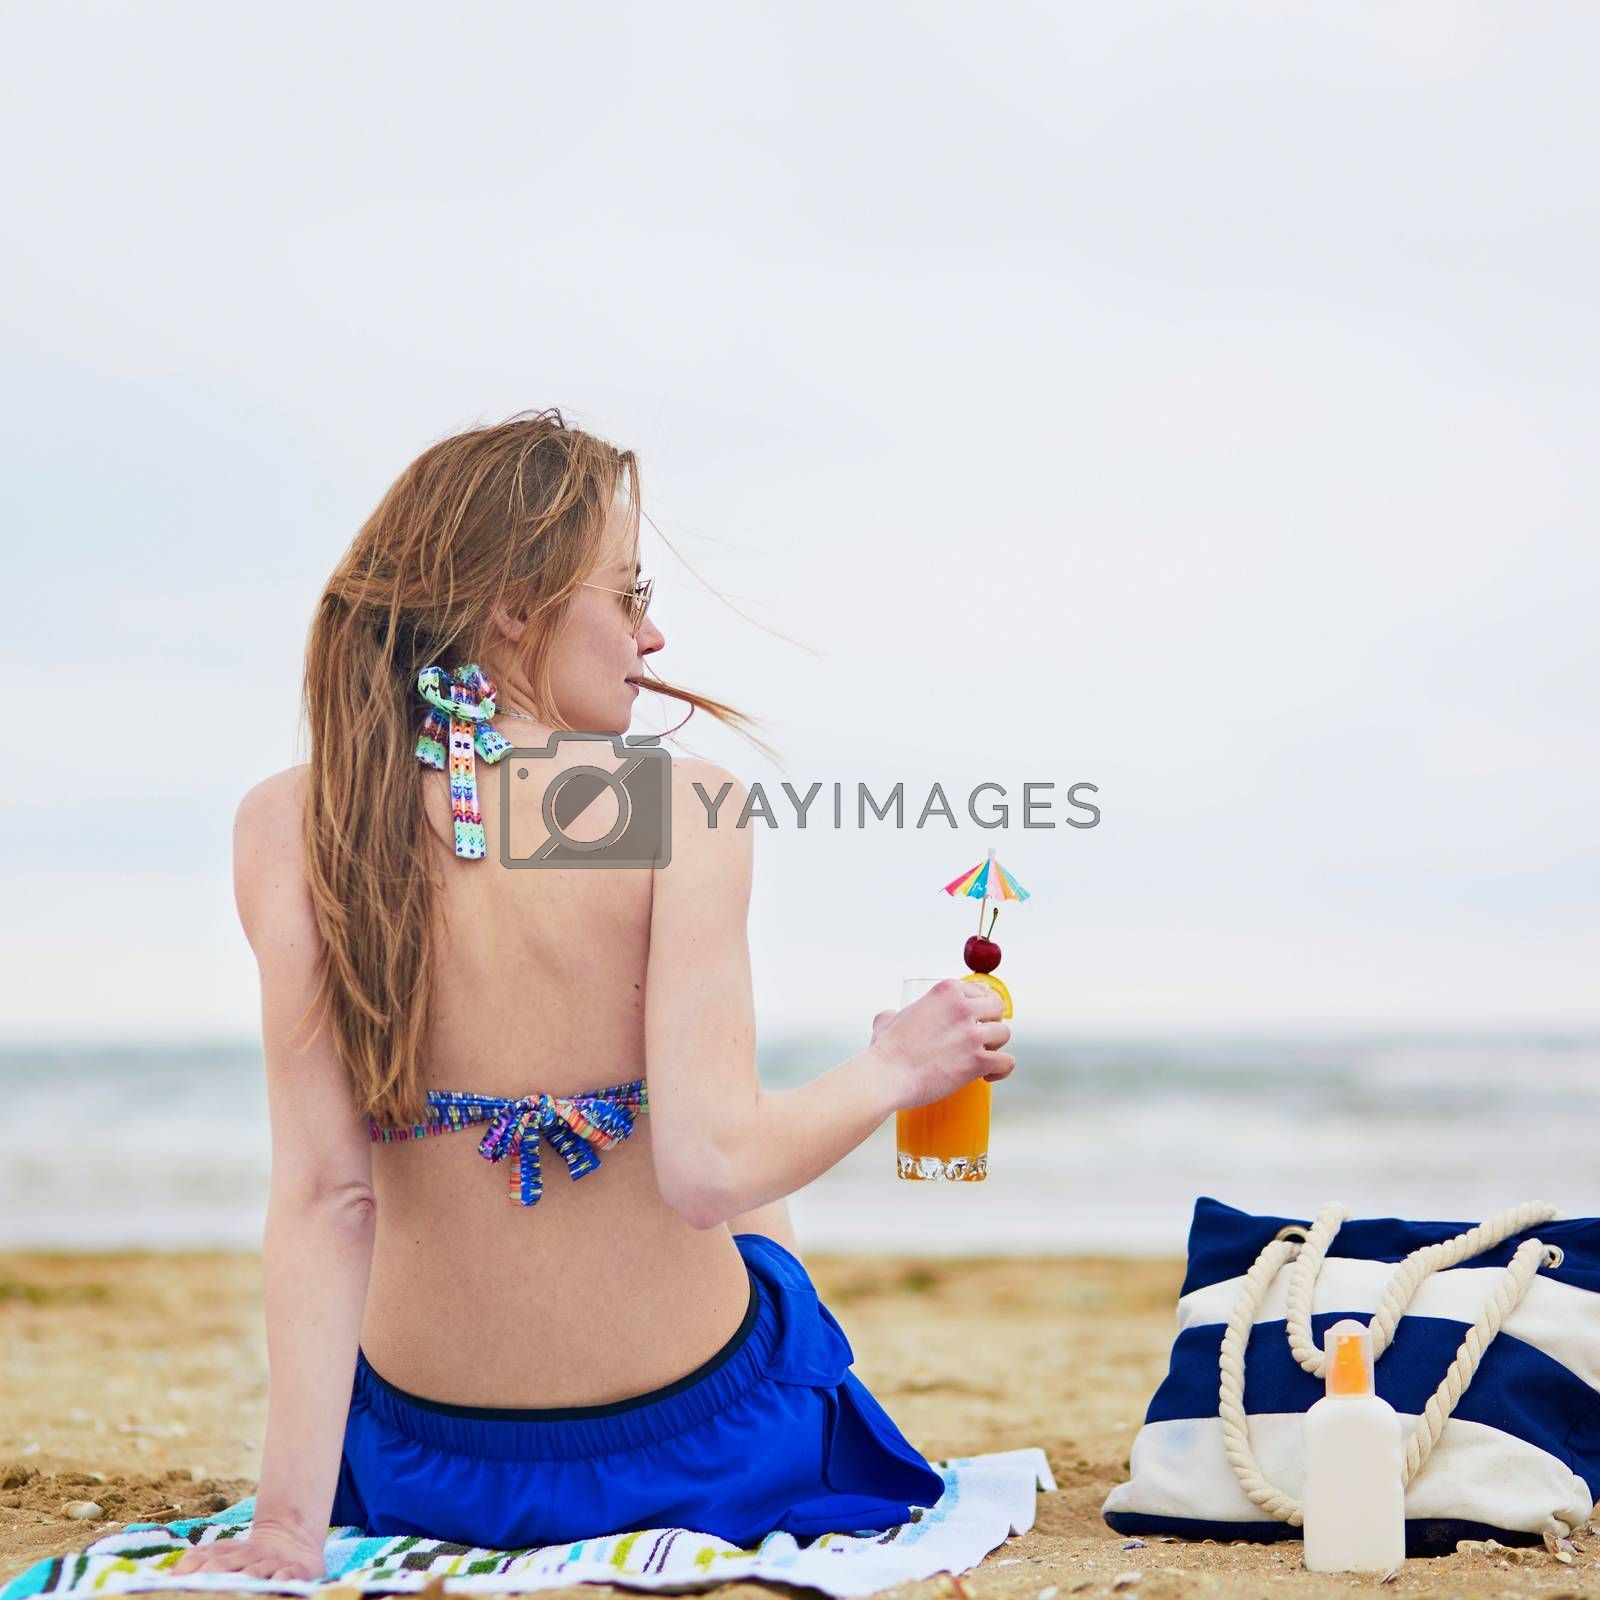 Beautiful young woman relaxing and sunbathing on beach, drinking delicious fruit or alcohol cocktail with paper umbrella, beach bag and sunscreen bottle on sand near the model